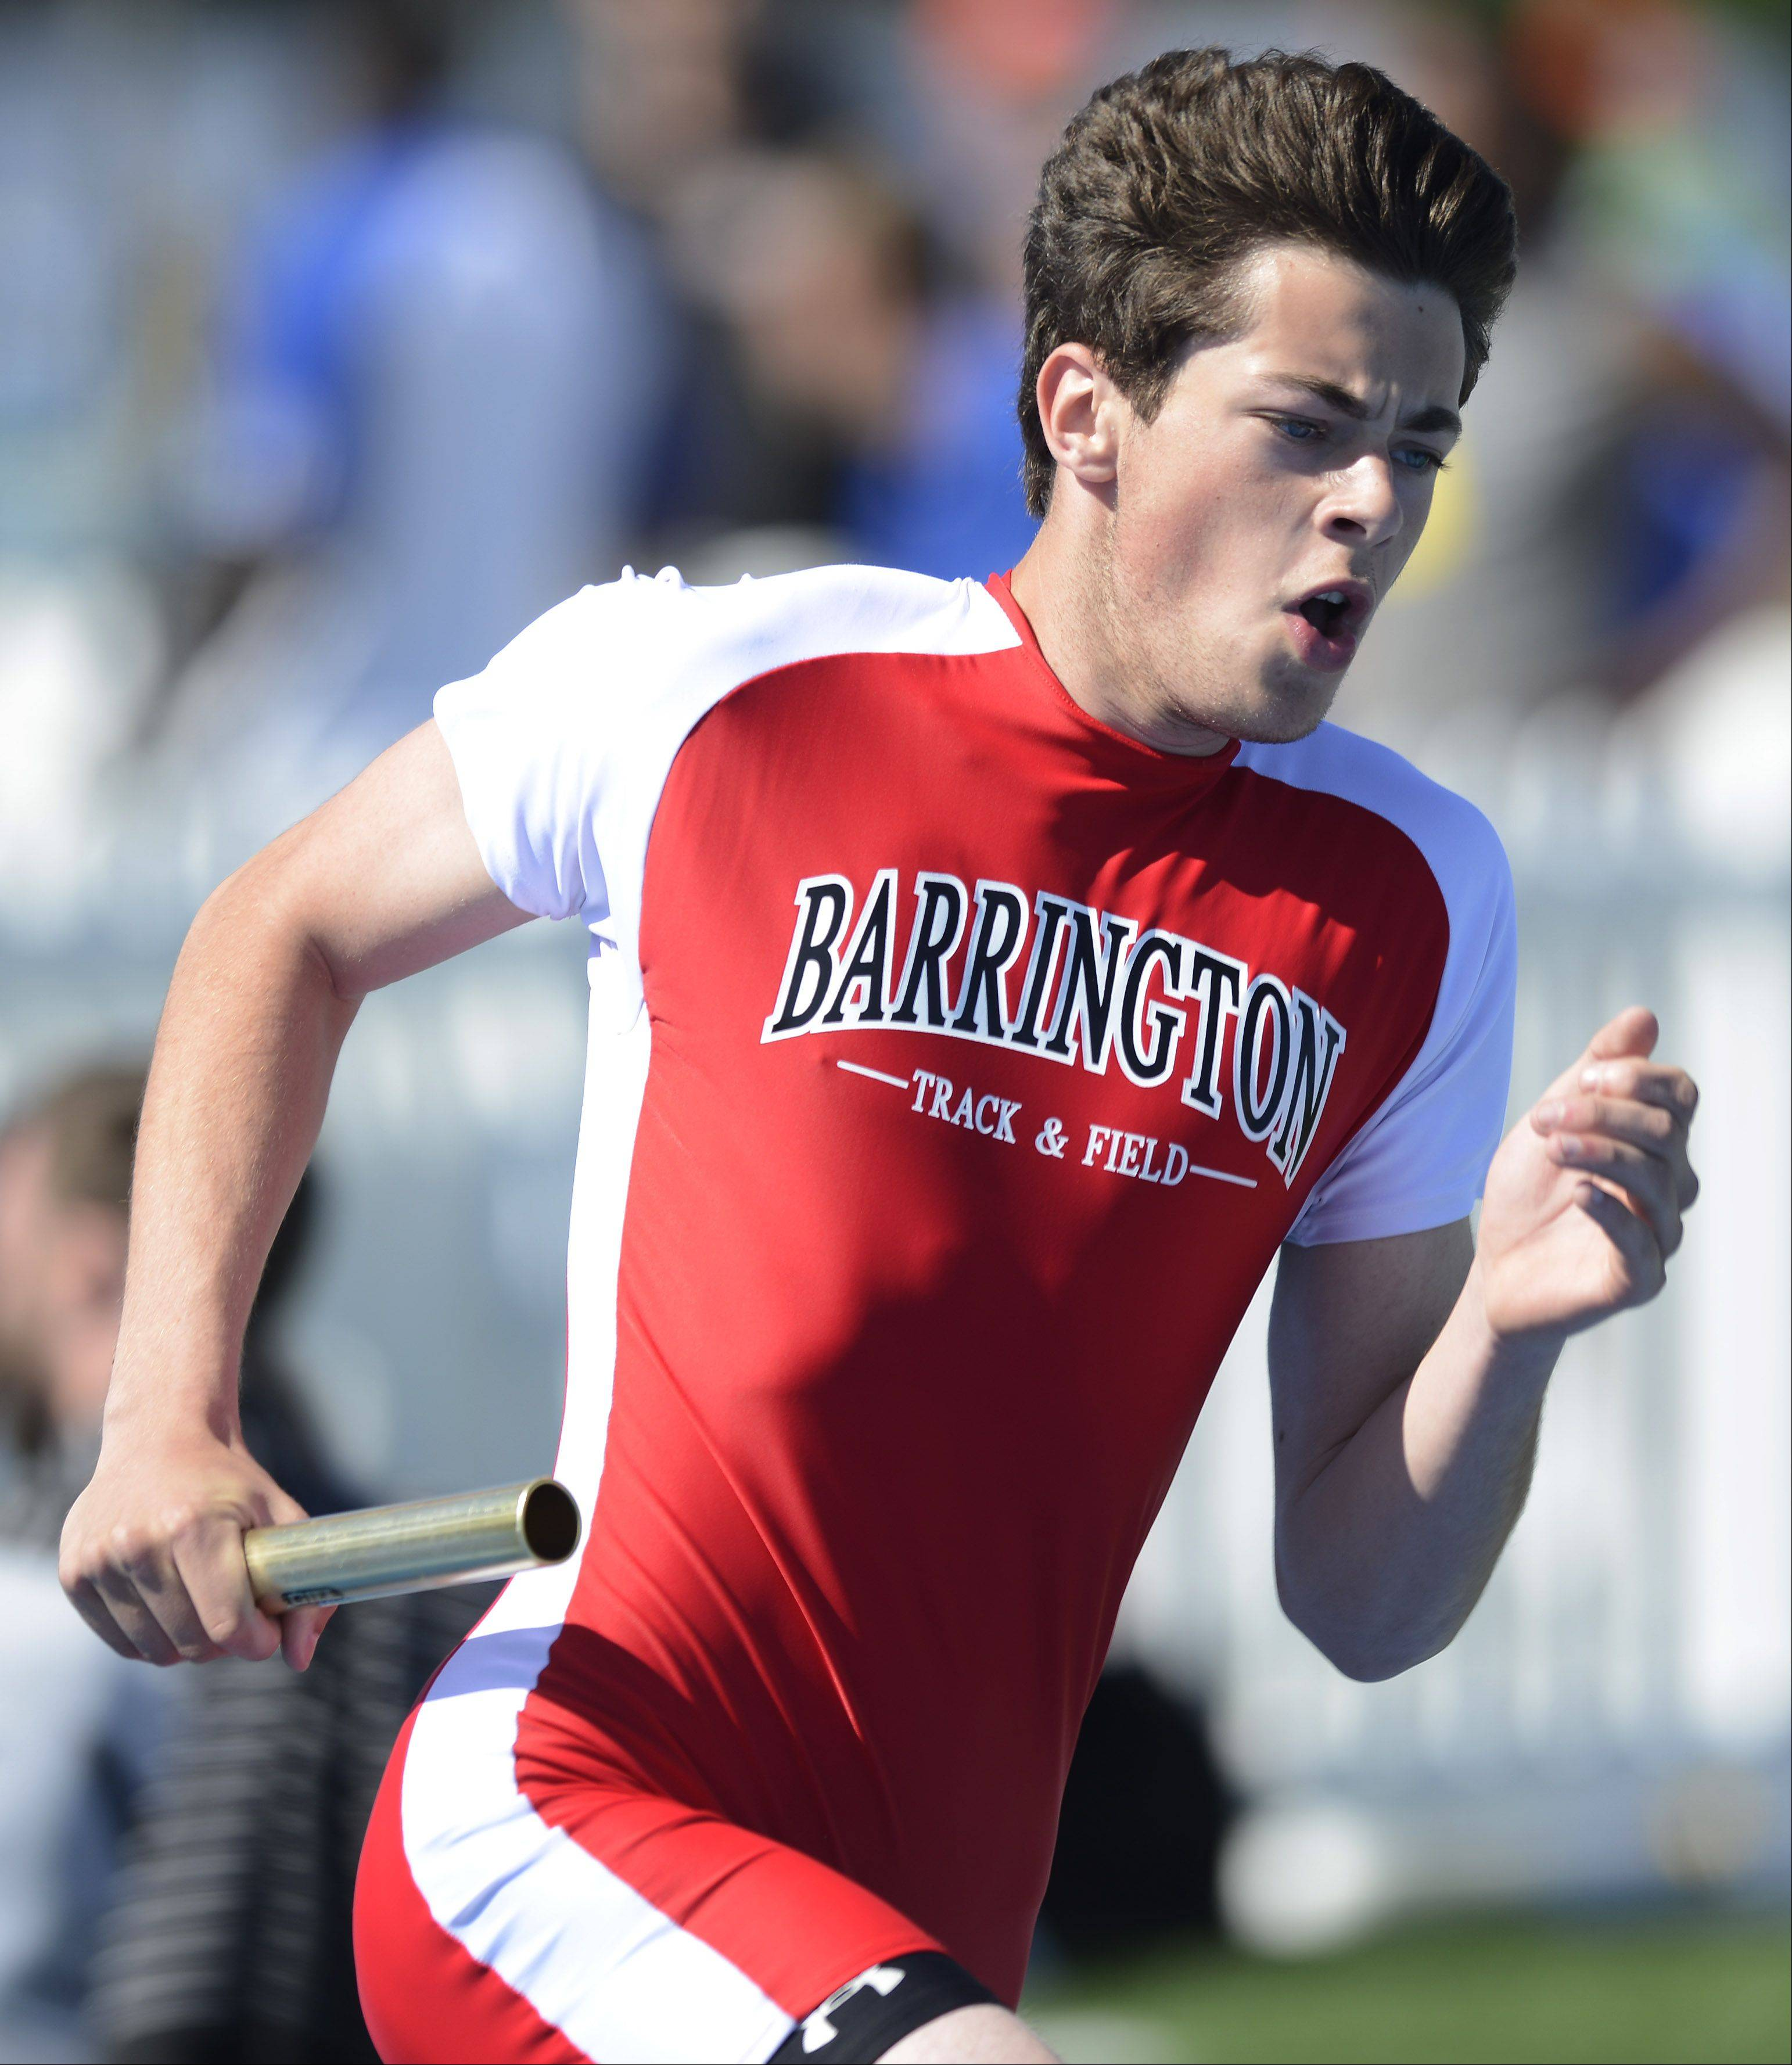 Barrington's John Andraschko carries the baton for his team in the Class 3A 4x400-meter relay during the boys state track preliminaries in Charleston Friday.